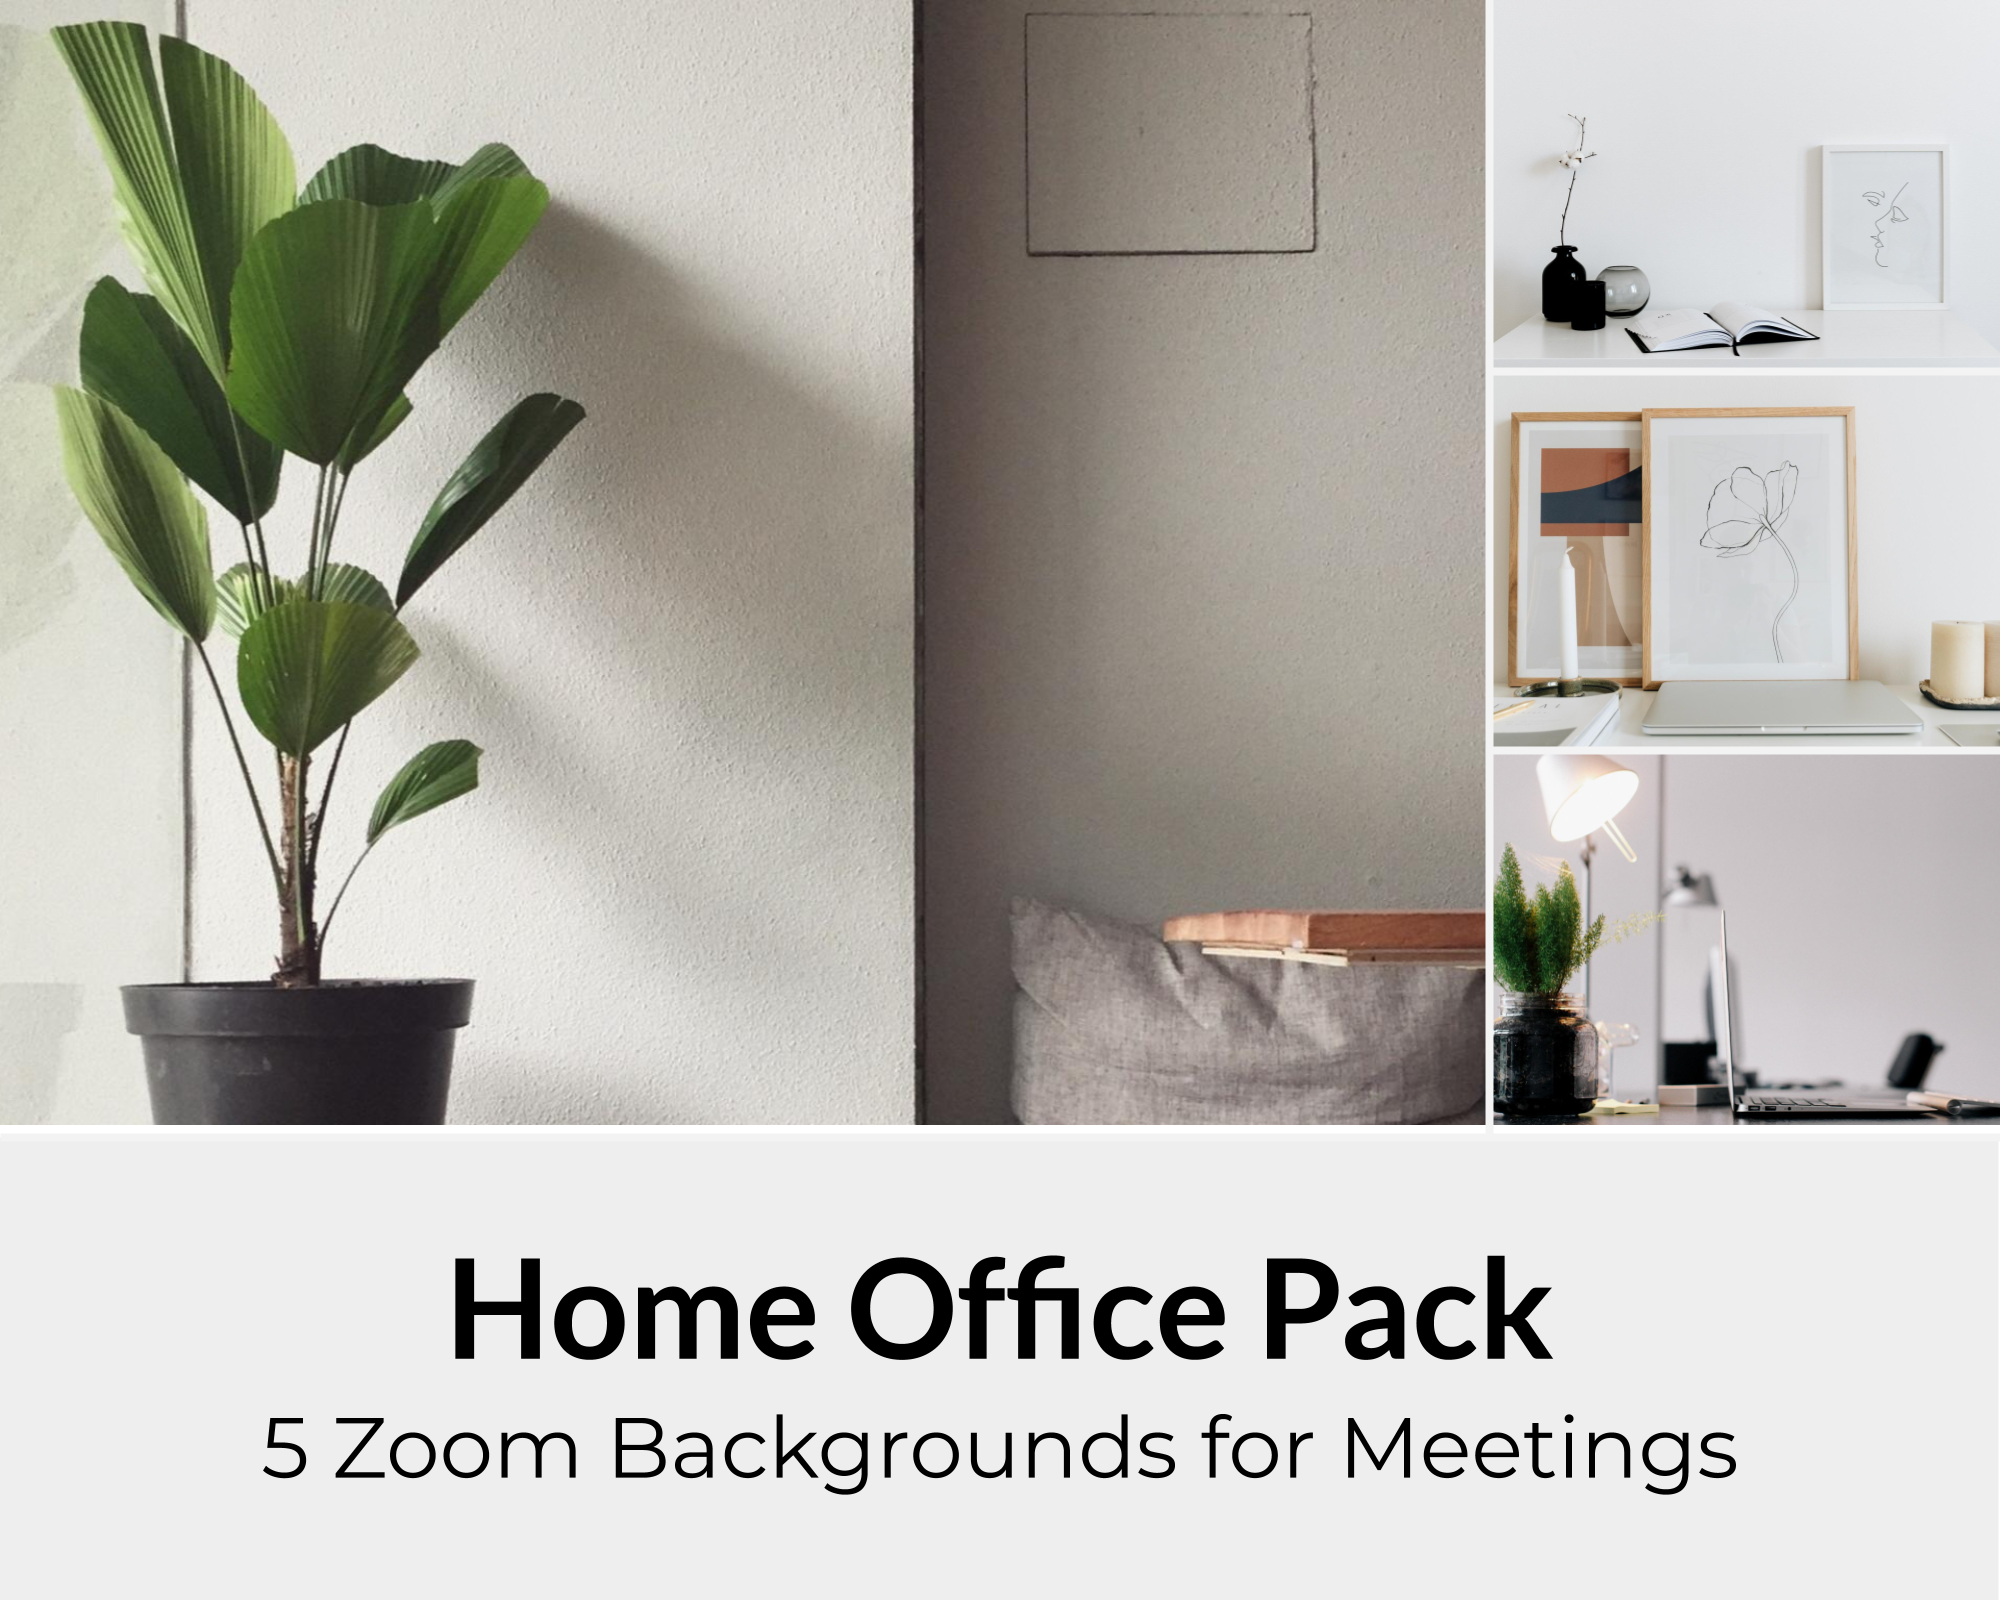 Home Office Zoom Background Pack For Virtual Meetings Instant Download Virtual Background Images Zoom Meeting Backdrops Office Background Home Office Wedding Photography Album Design